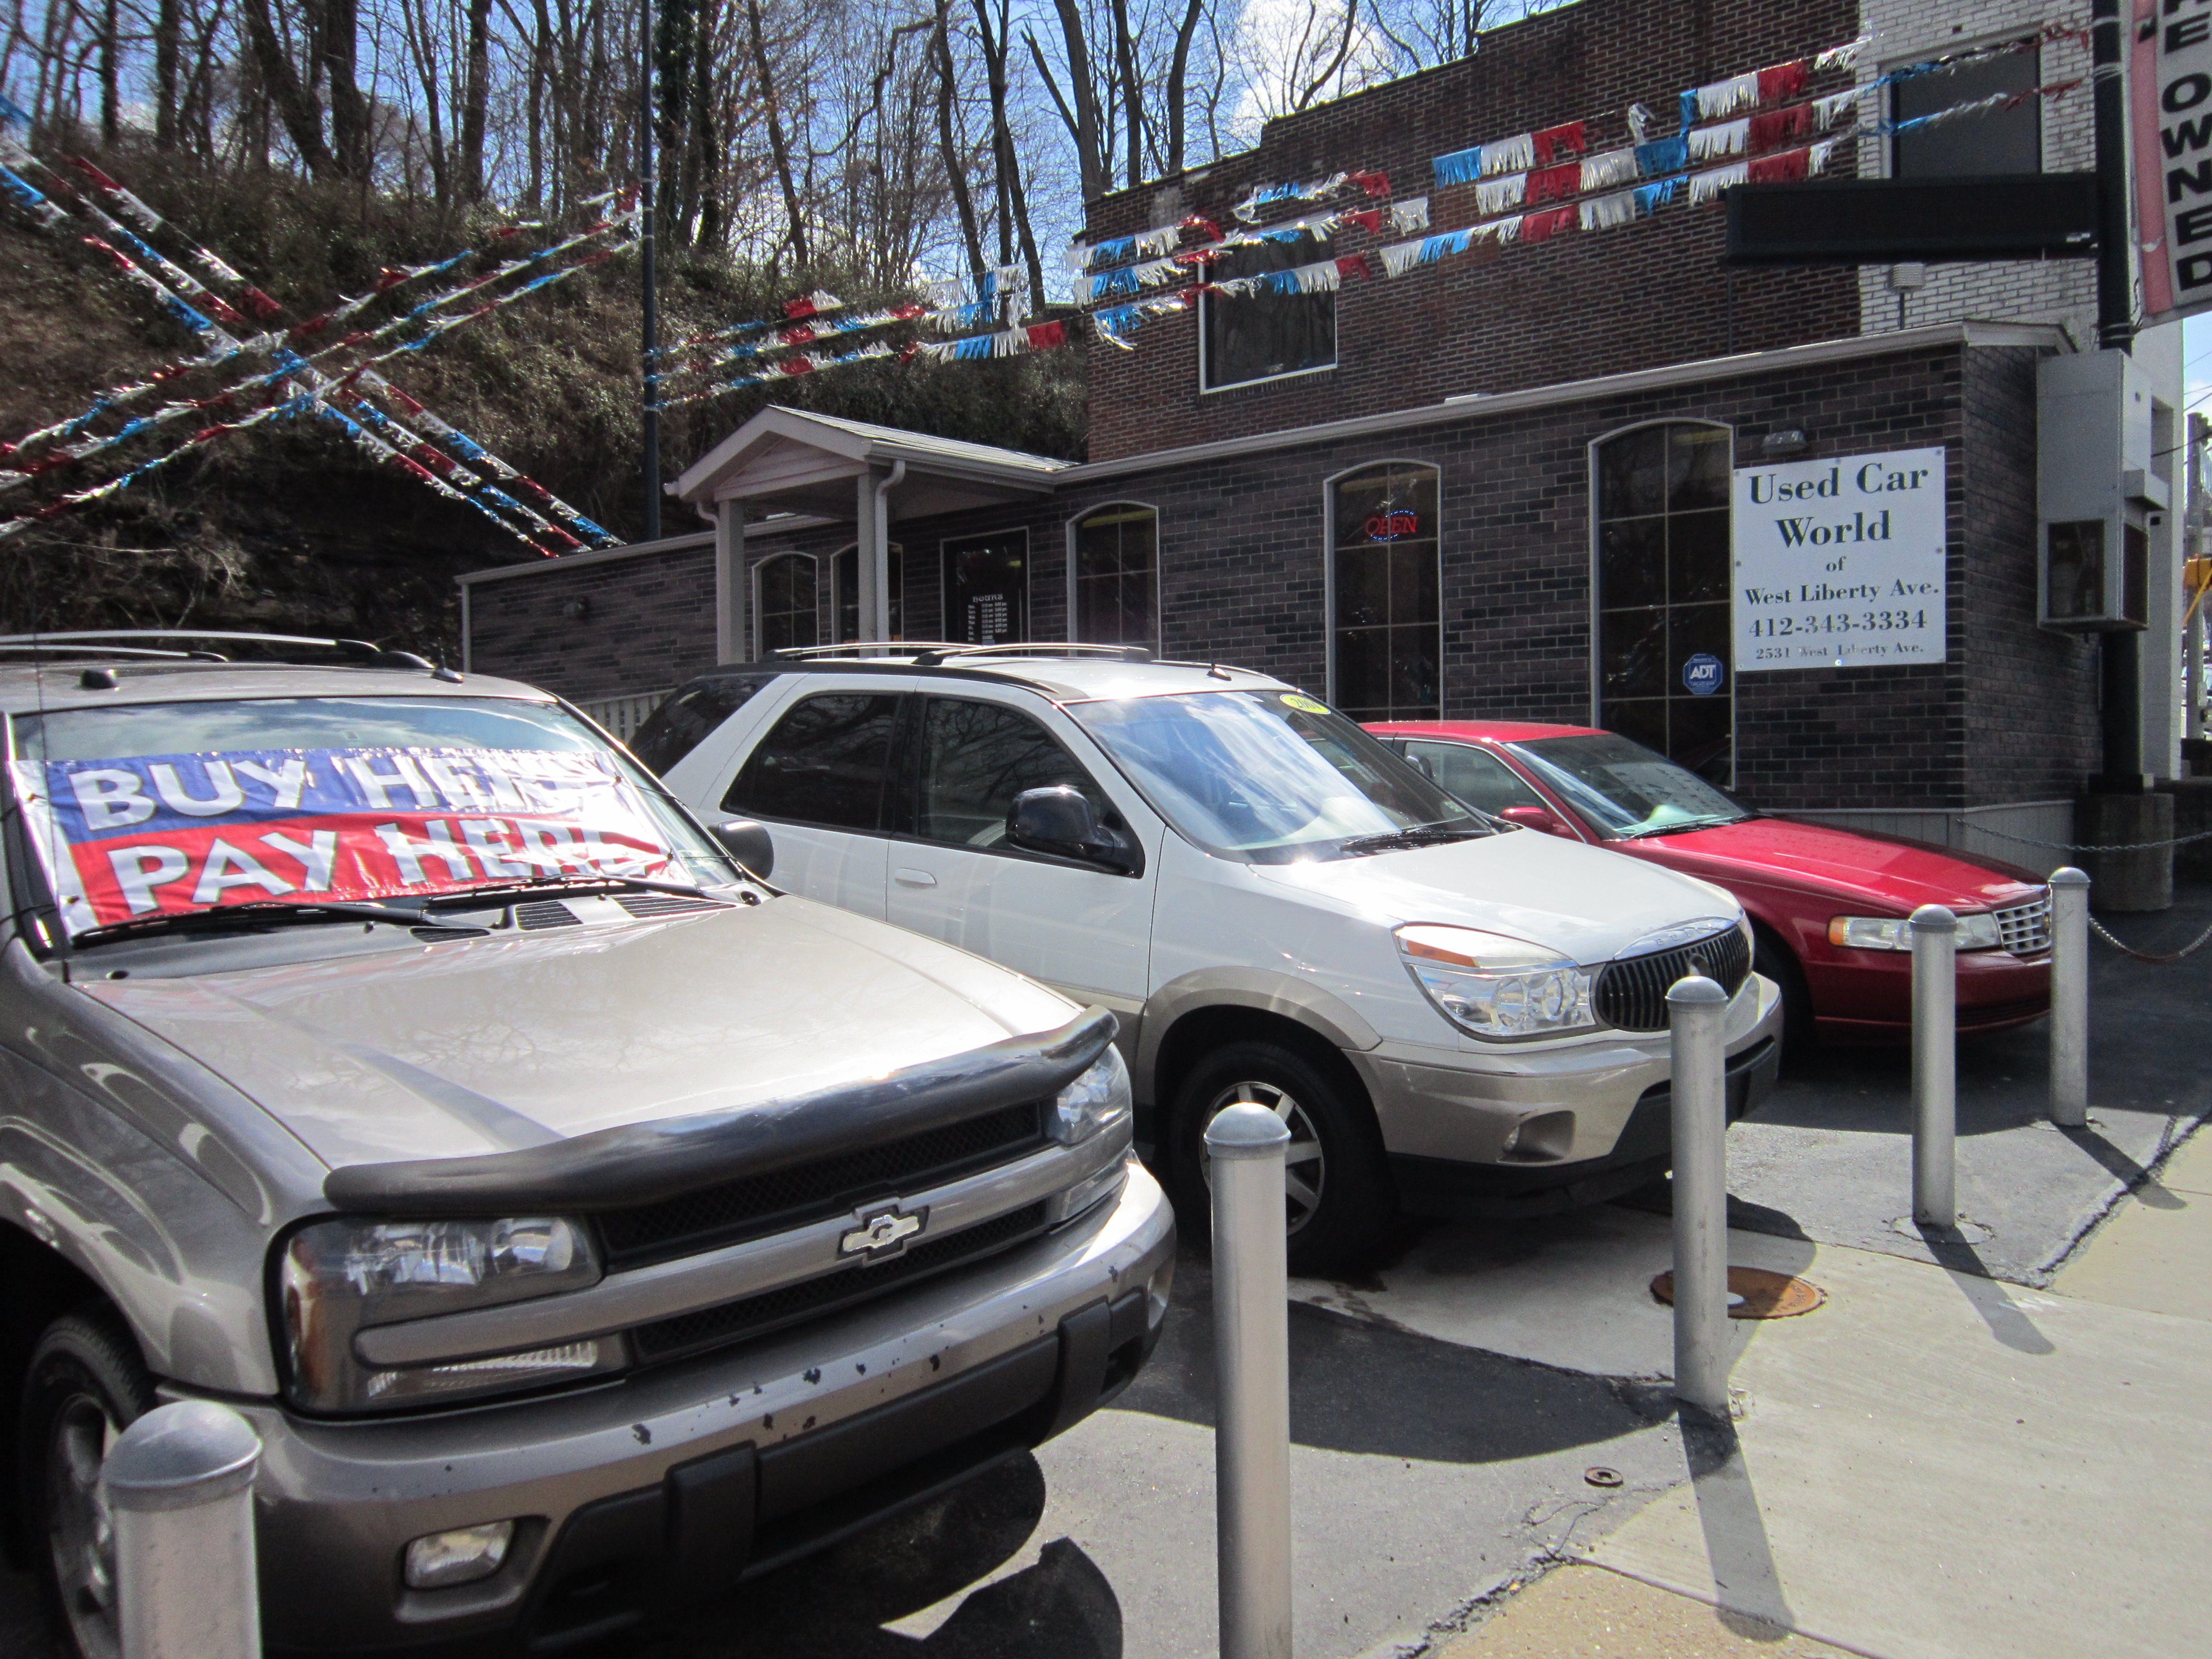 Used Car World West Liberty 2531 W Liberty Ave Pittsburgh PA